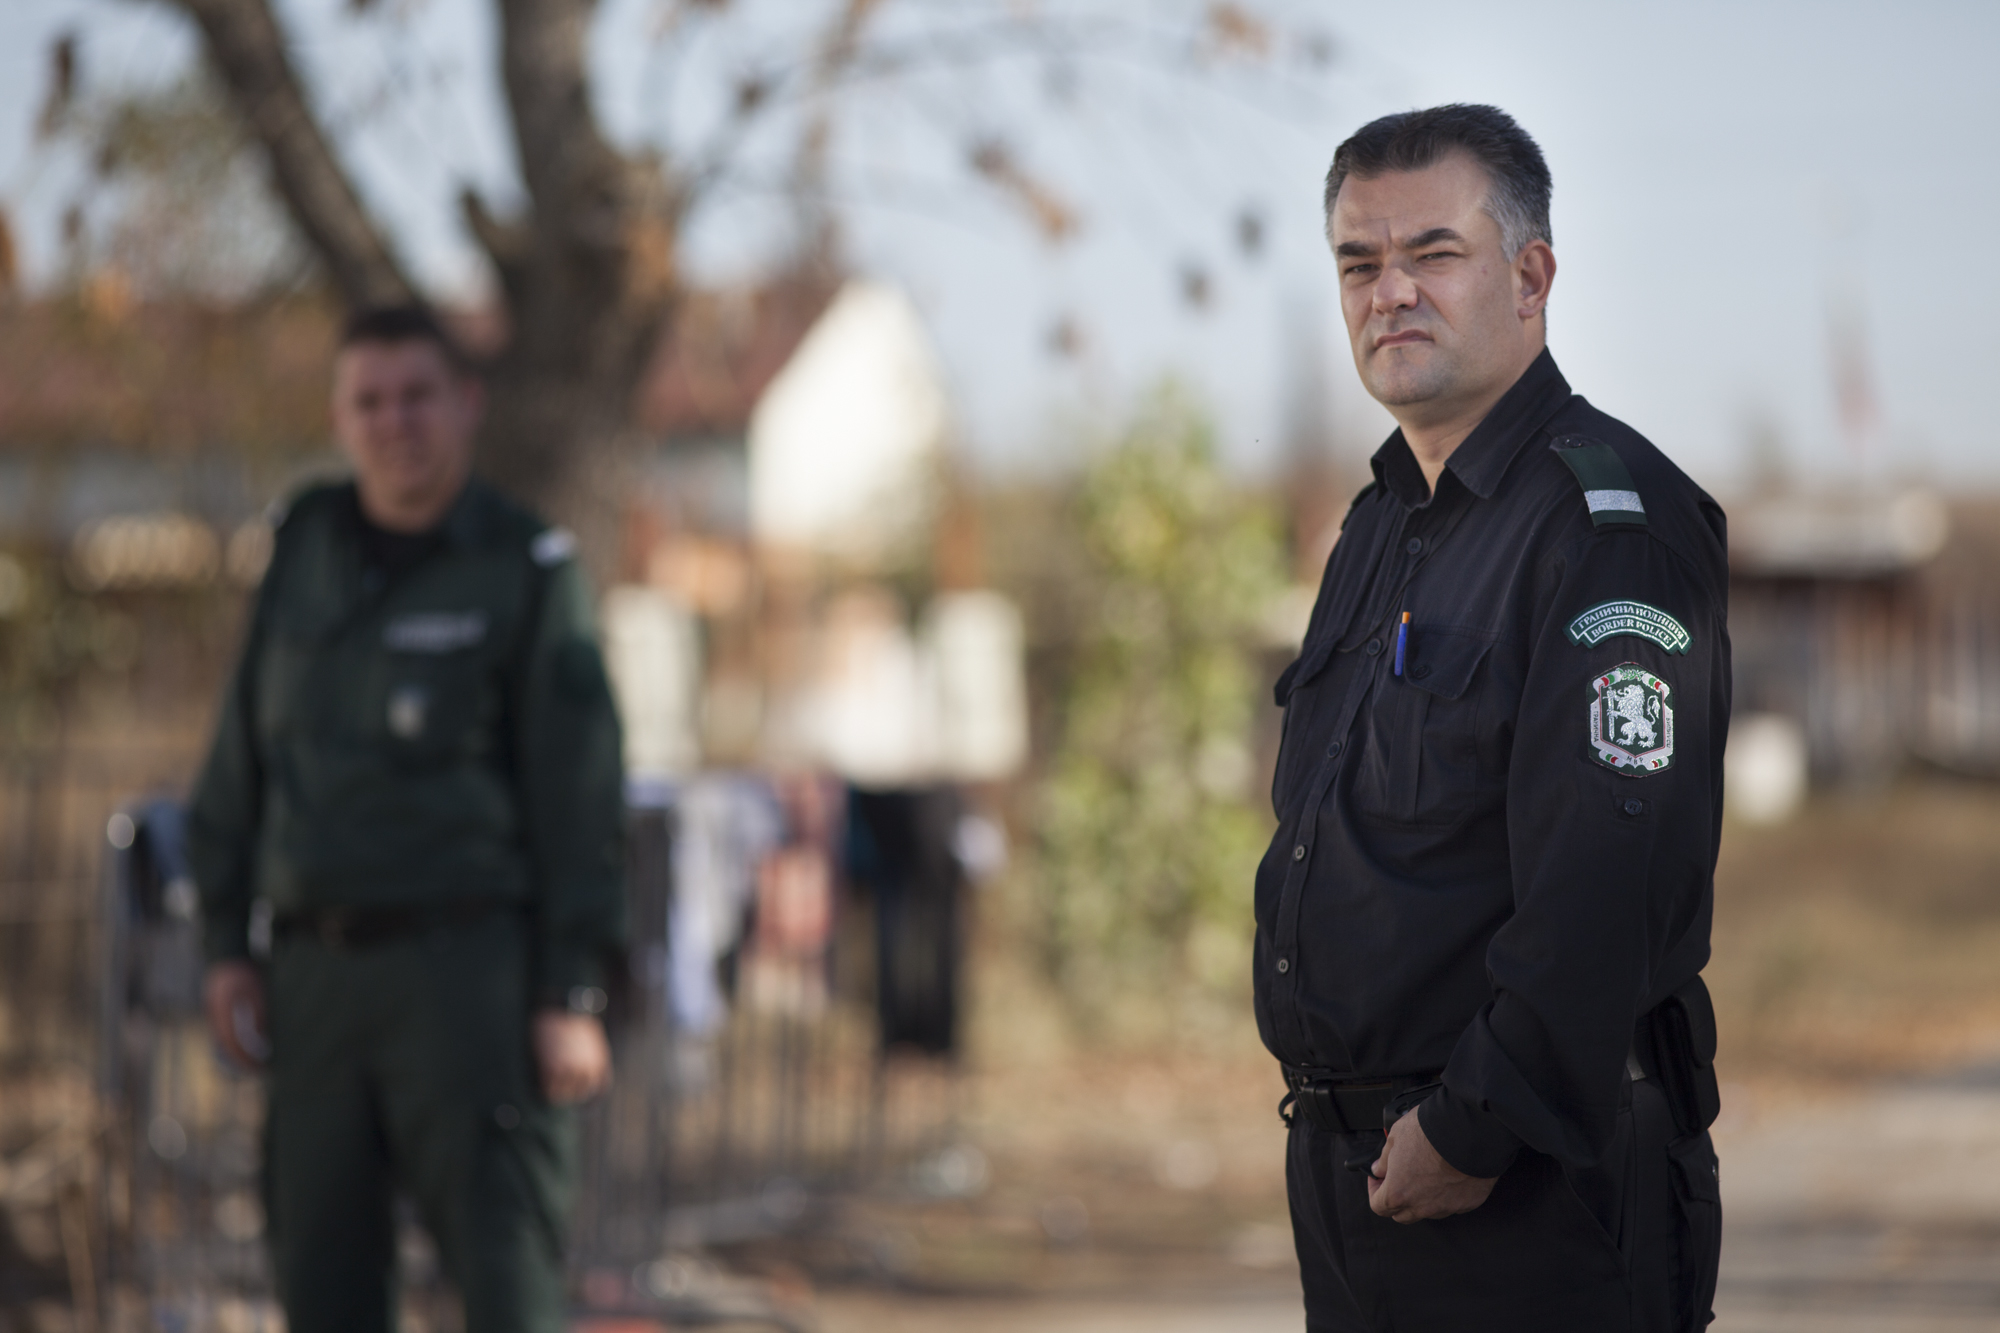 A Bulgarian border police officer at the Elhovo Border Police station, where migrants are held and processed before being sent on to detention centres or centres for asylum seekers.